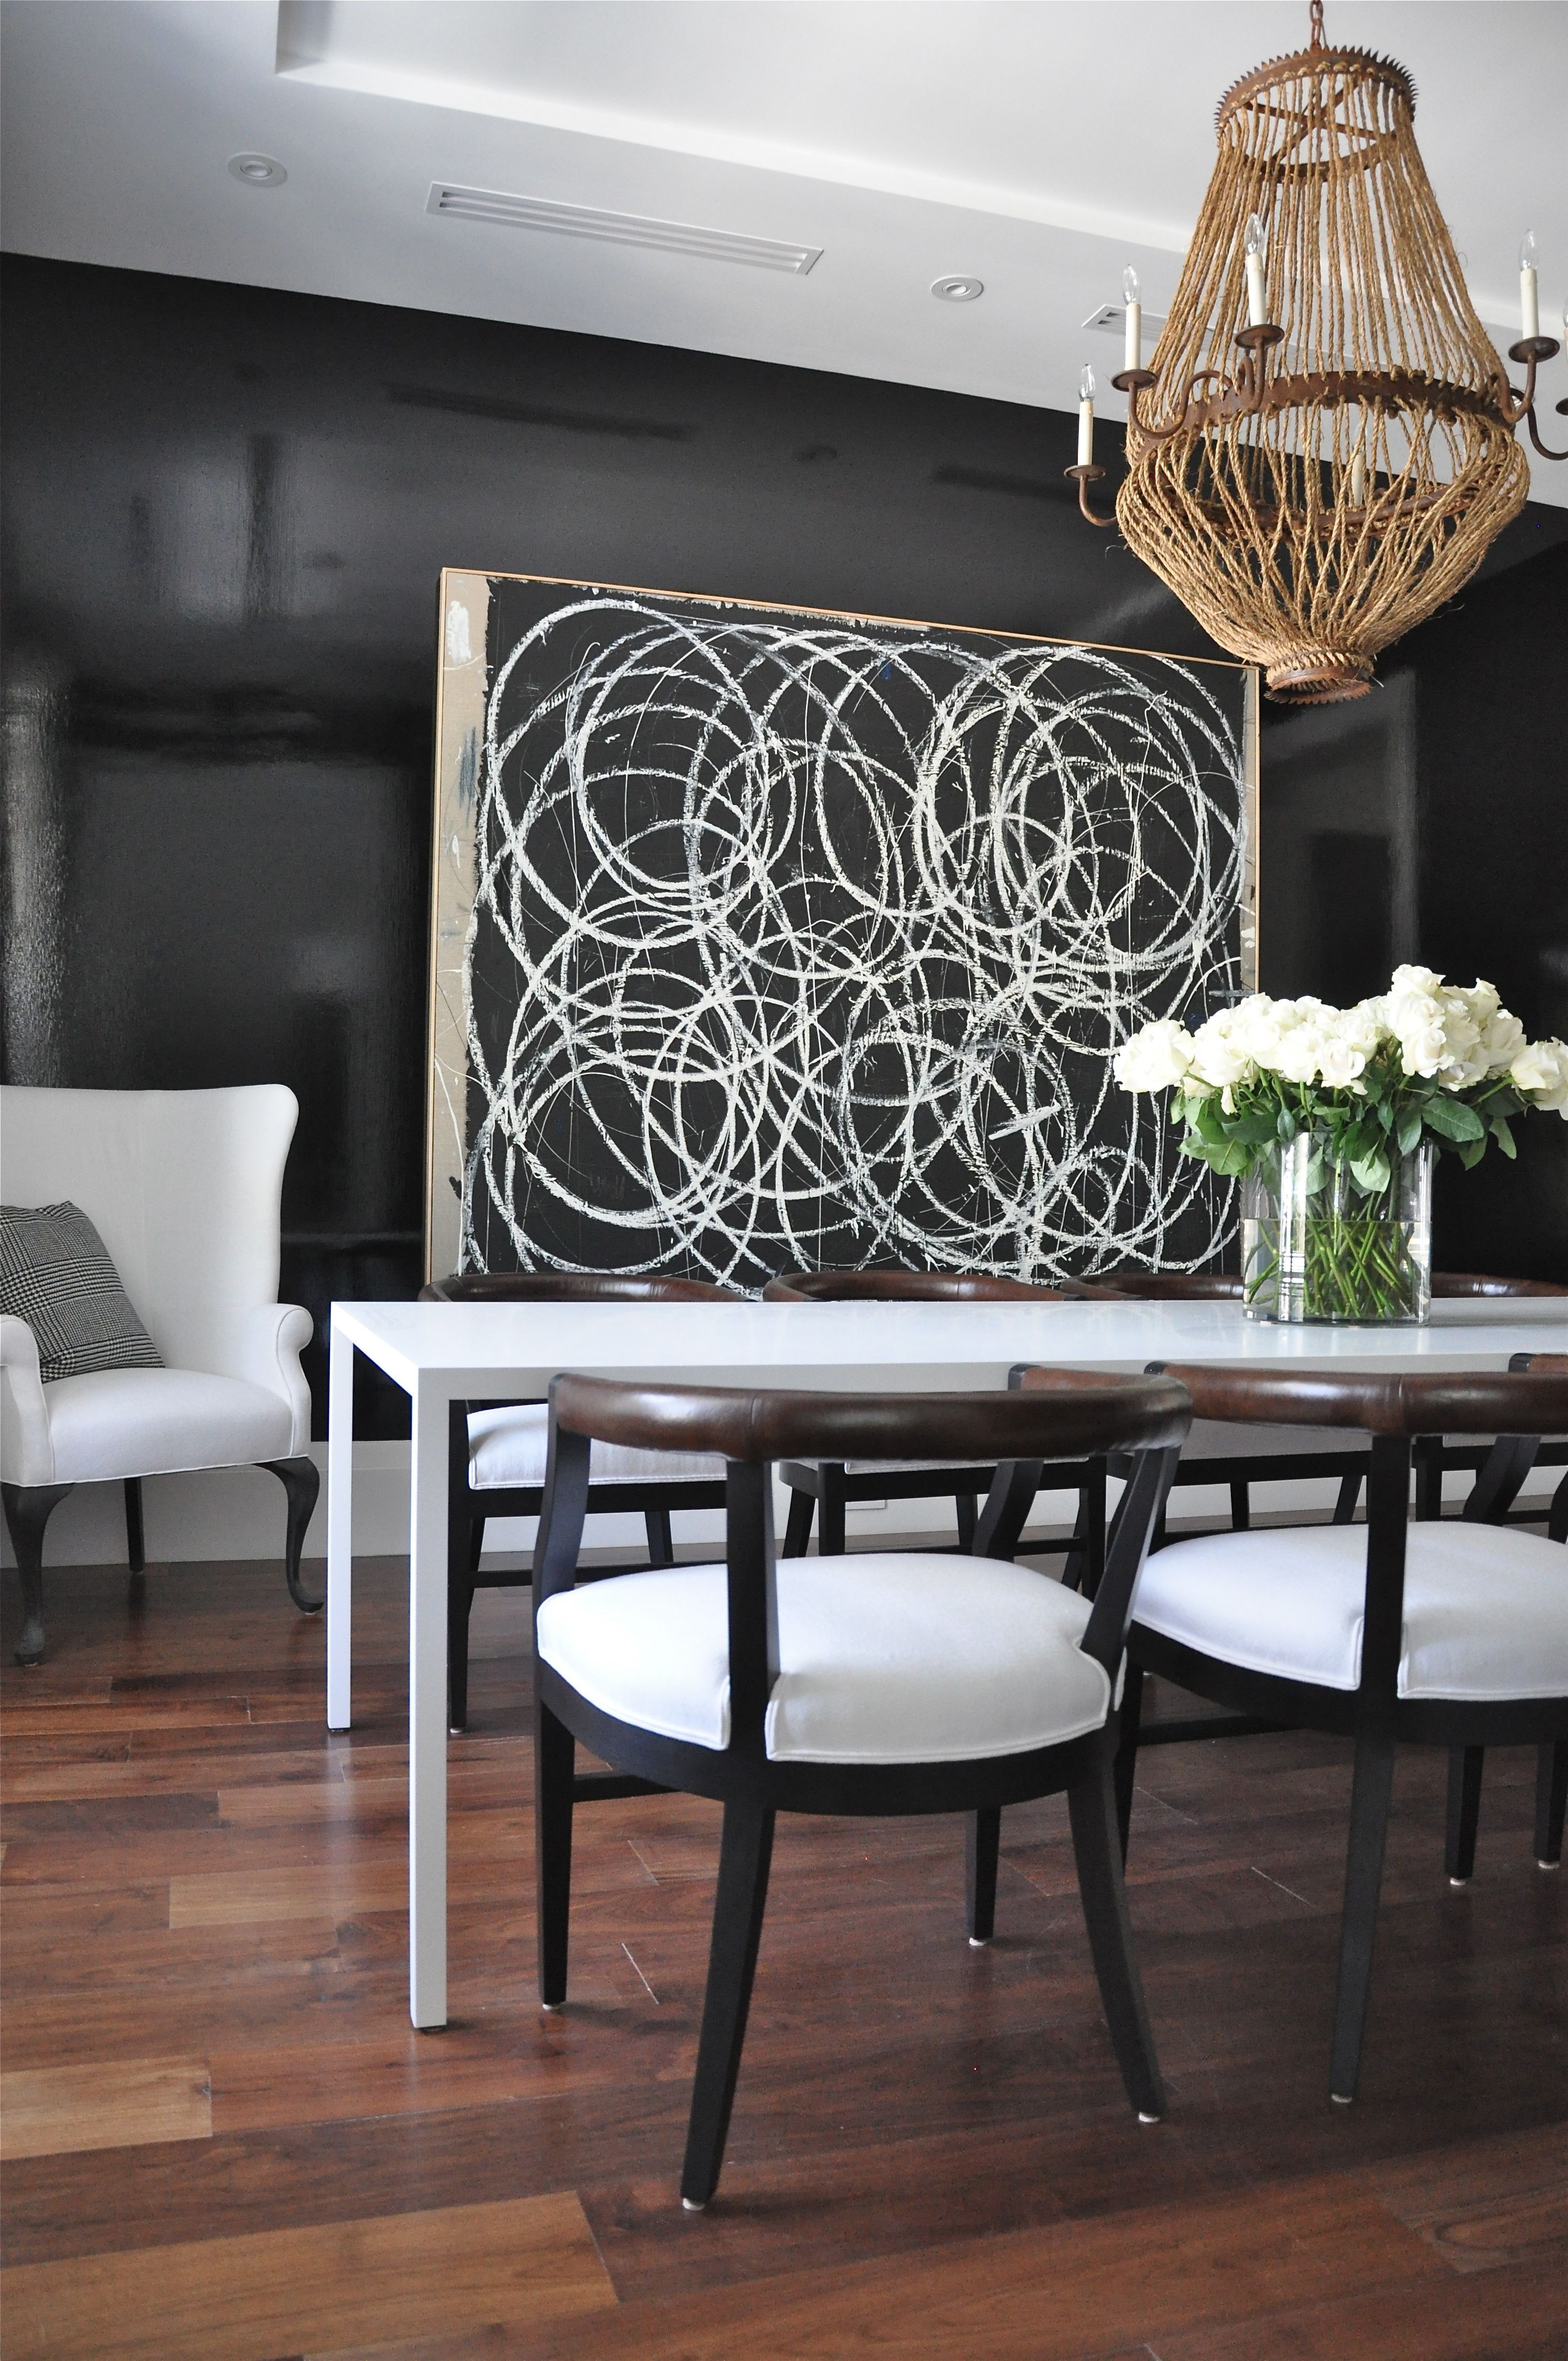 Pin By Alexis Vo Kwan On Dining Home Decor Styles High Gloss Dining Room Wall Decor